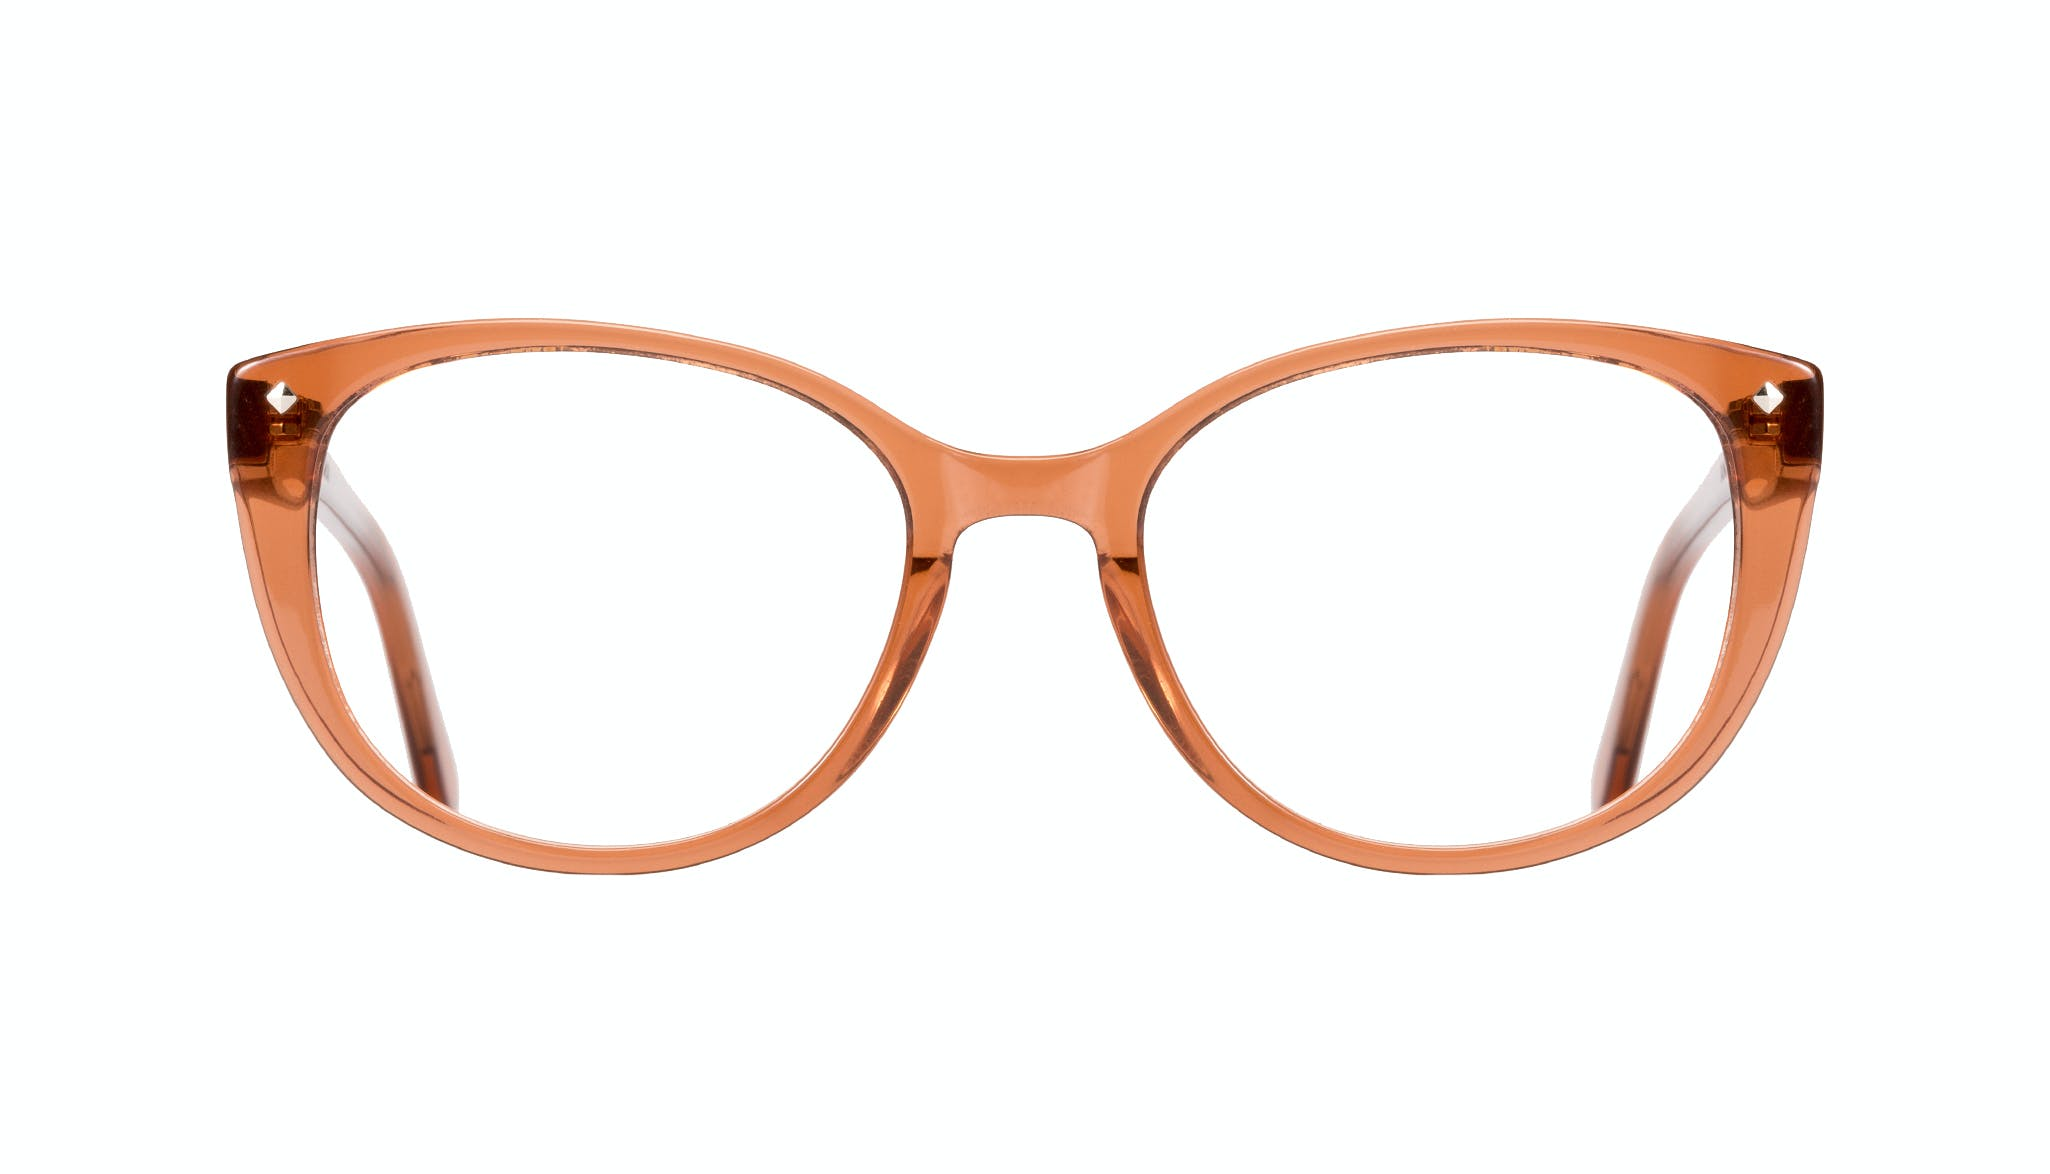 Affordable Fashion Glasses Cat Eye Eyeglasses Women Mist umber Front